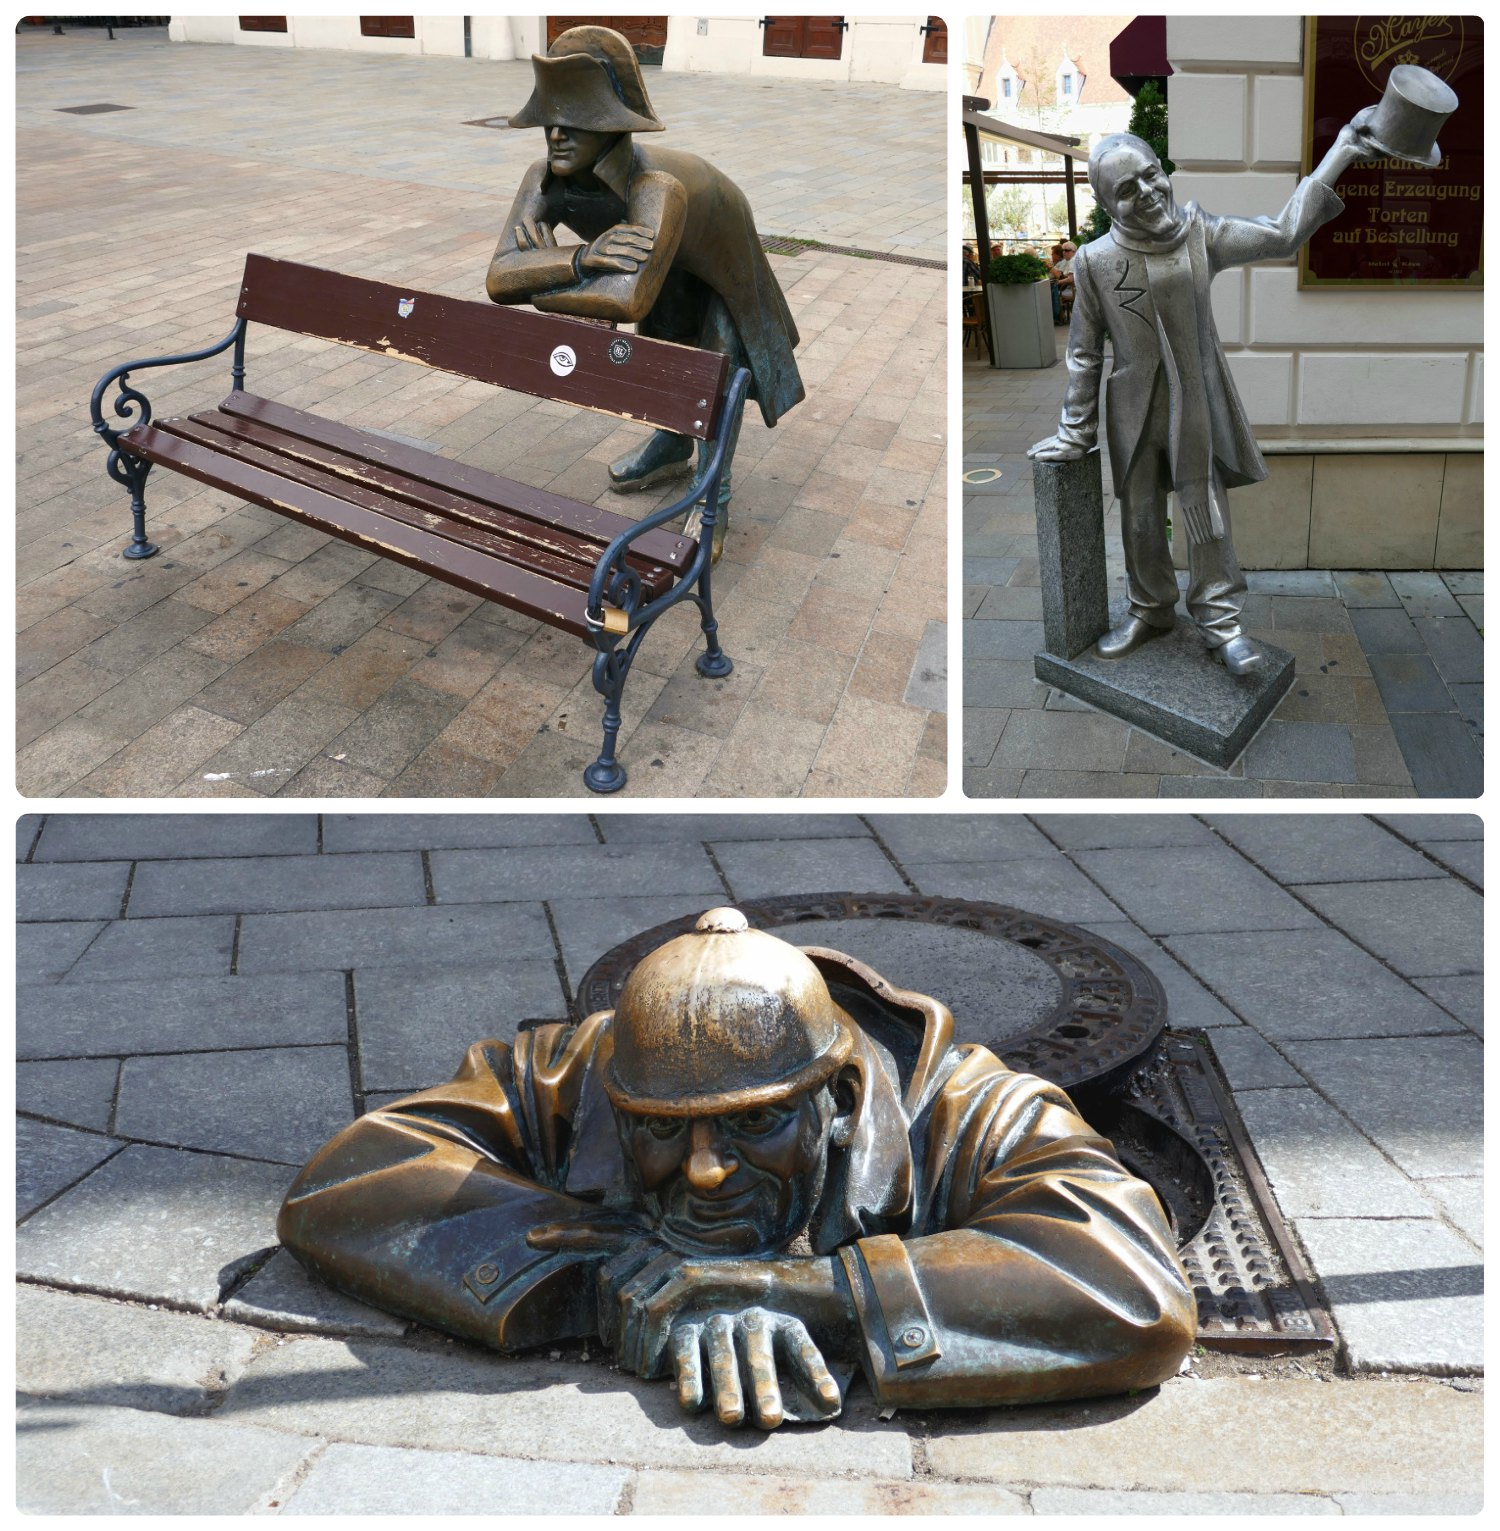 The sculptures around town are a huge draw for visitors and you'll likely have to wait your turn for an up close photograph. Clockwise (from the top): The Napoleon Soldier keeping visitors on the bench company, Schone Naci greeting passersby, the Man at Work (Cumil) who's either not working or sneaking a peak at passing women.